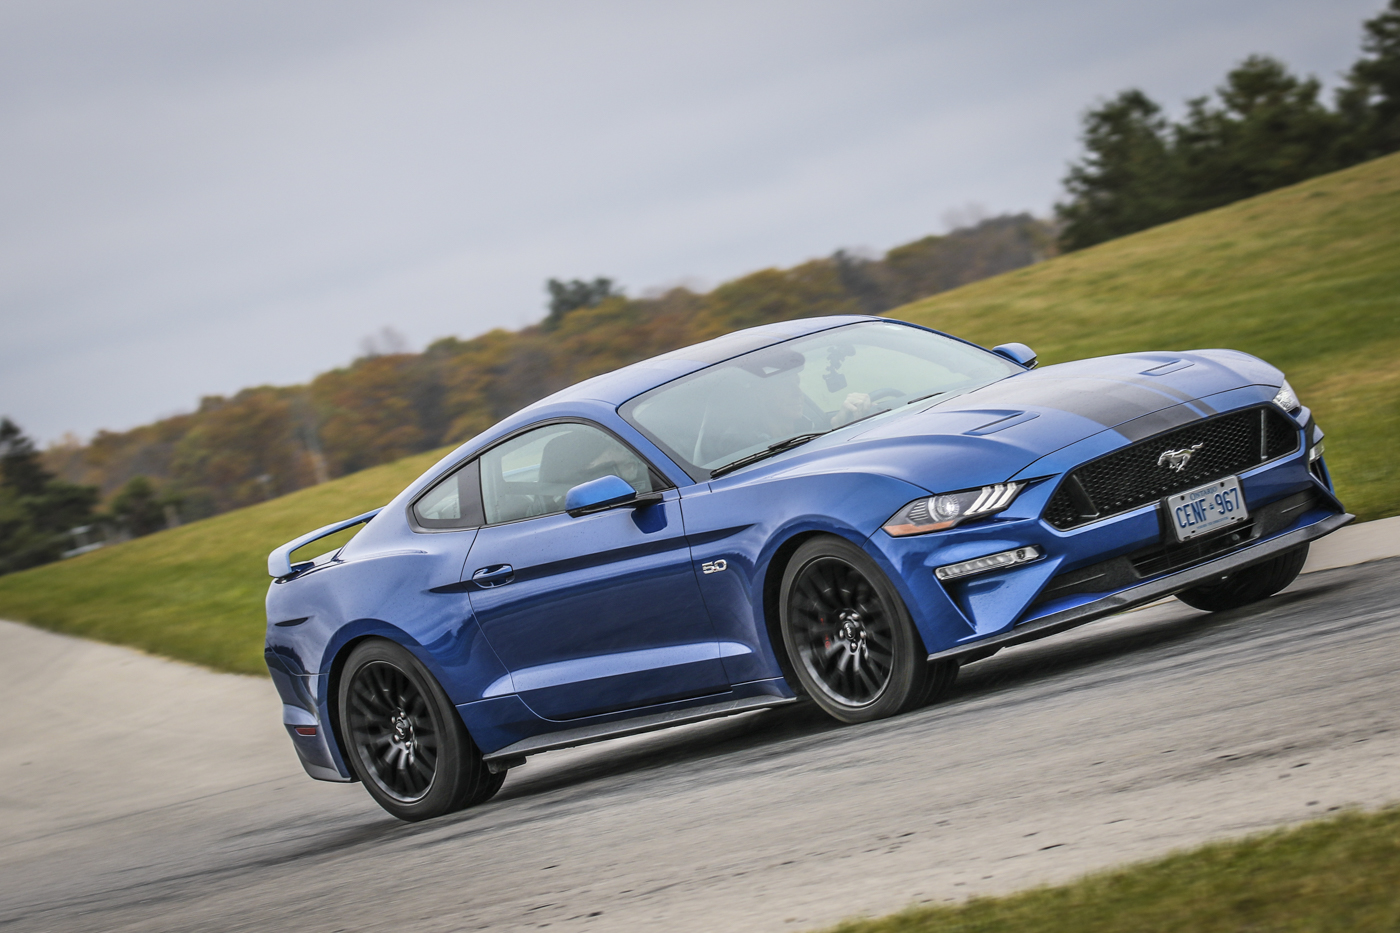 2019 Ford Mustang GT – Manual or Automatic, Which Would We